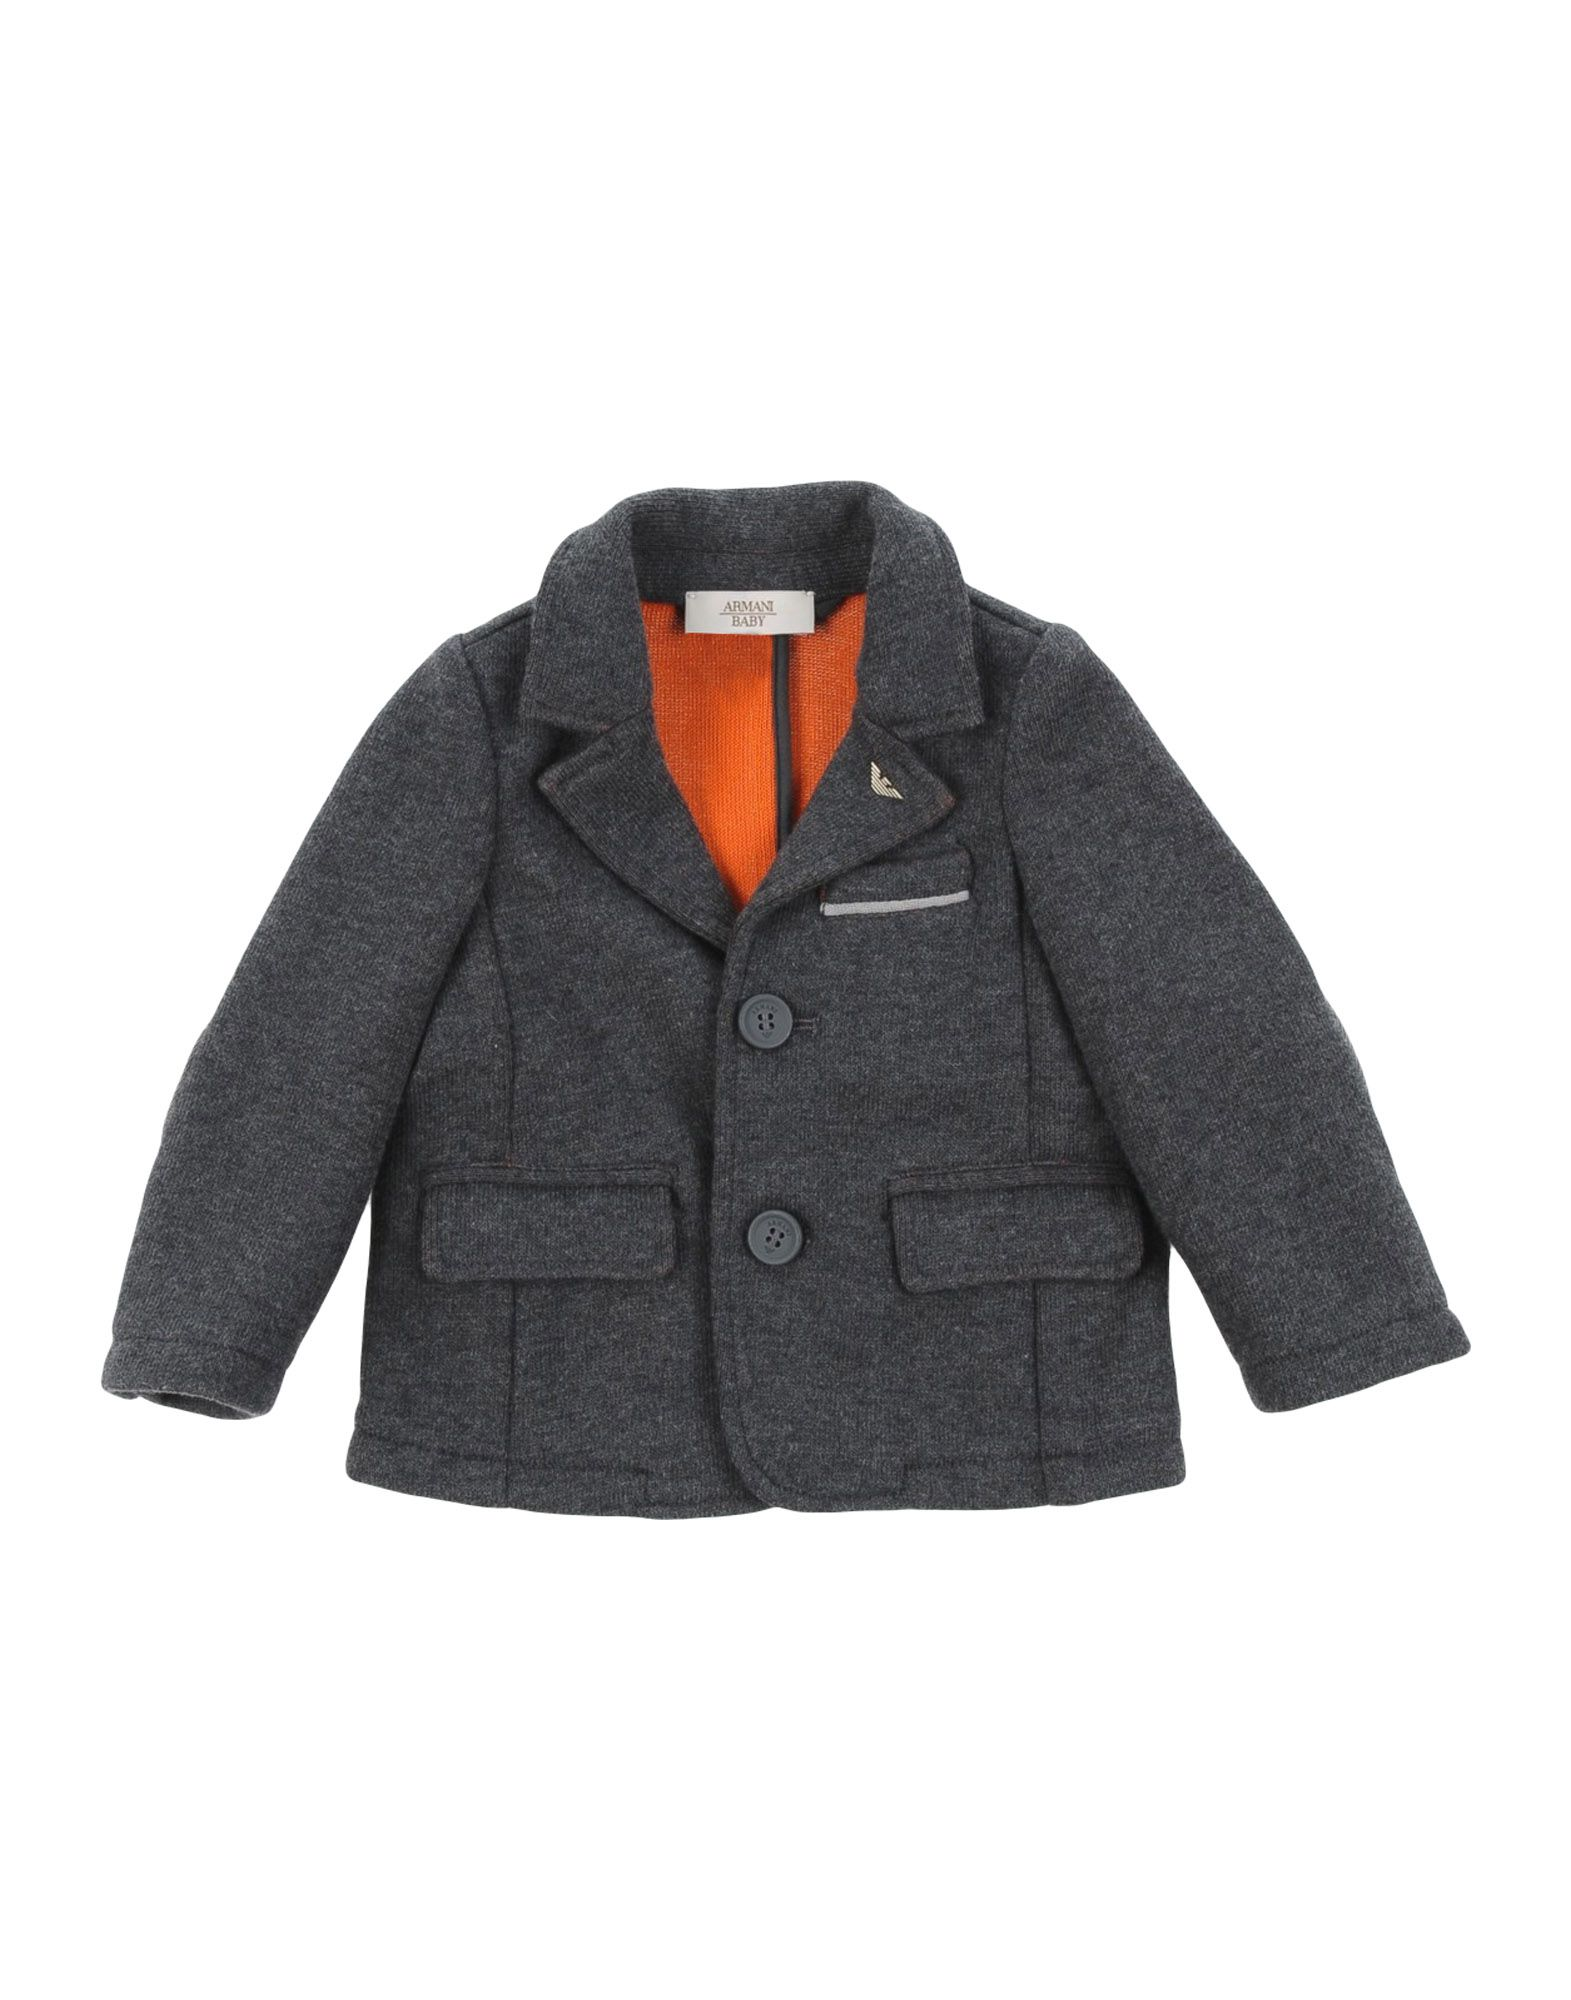 ARMANI JUNIOR Jackett Kinder Grau von ARMANI JUNIOR